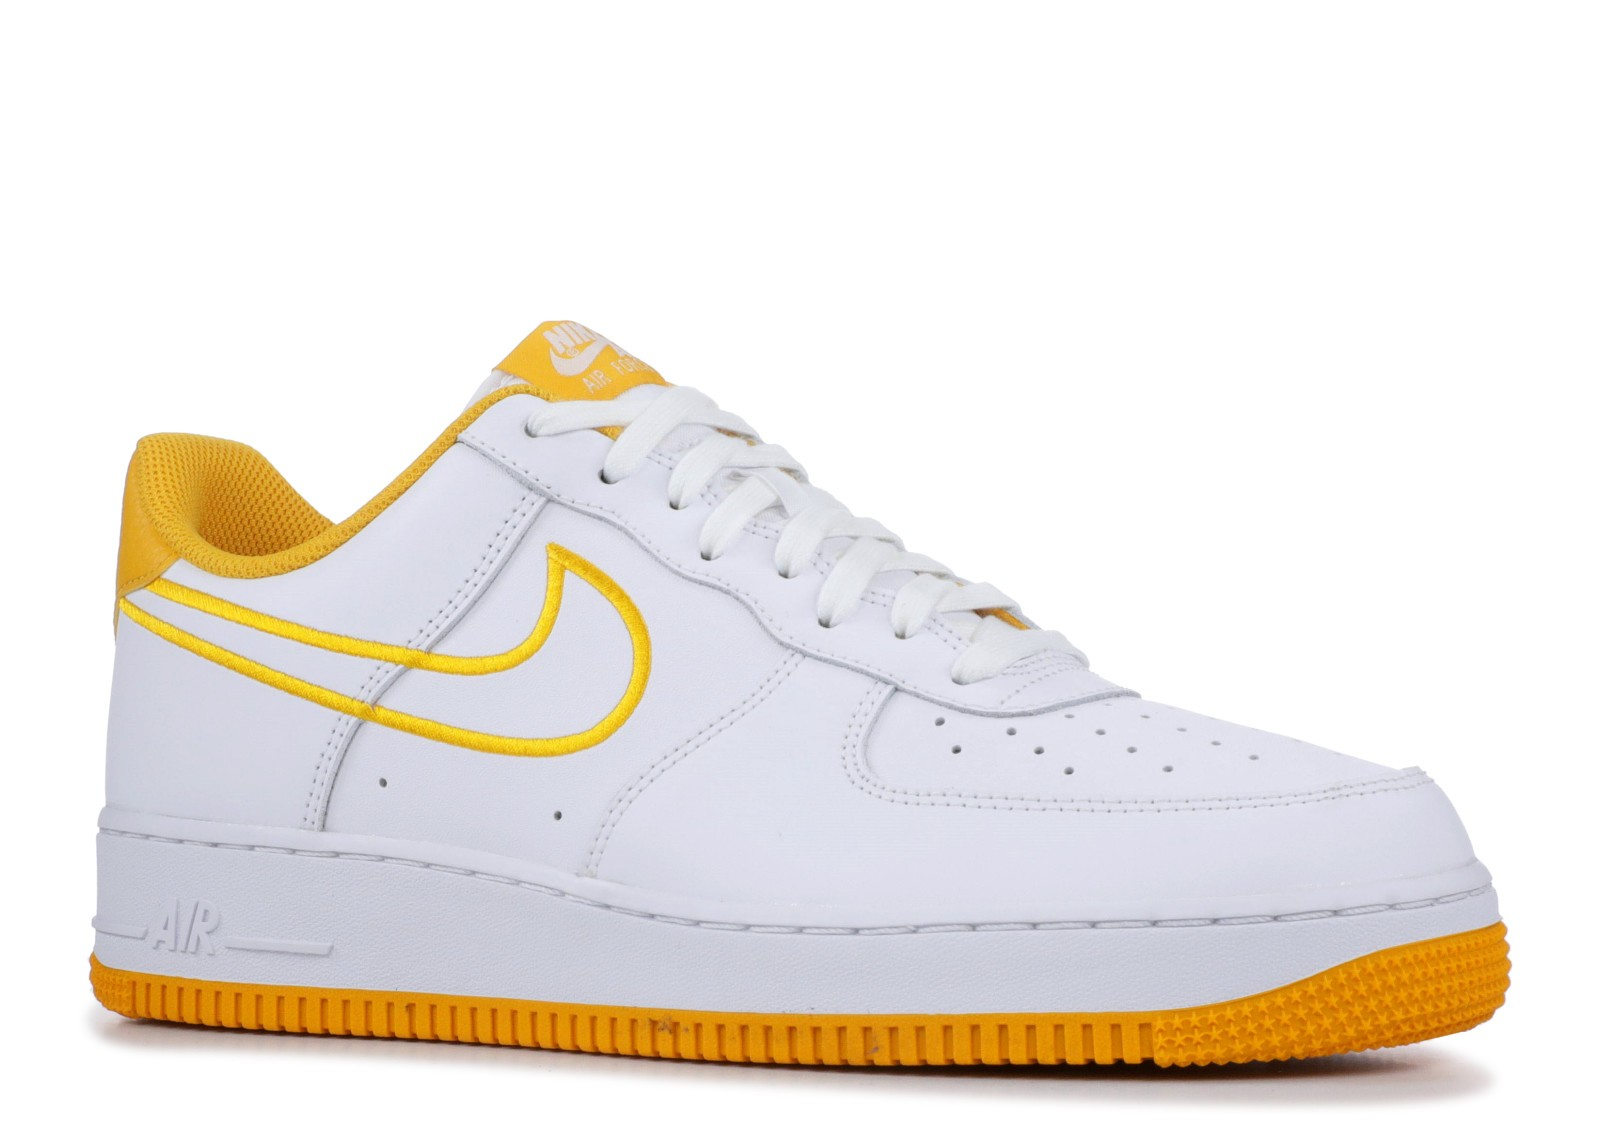 Nike Air Force 1 Low 07 LTHR White